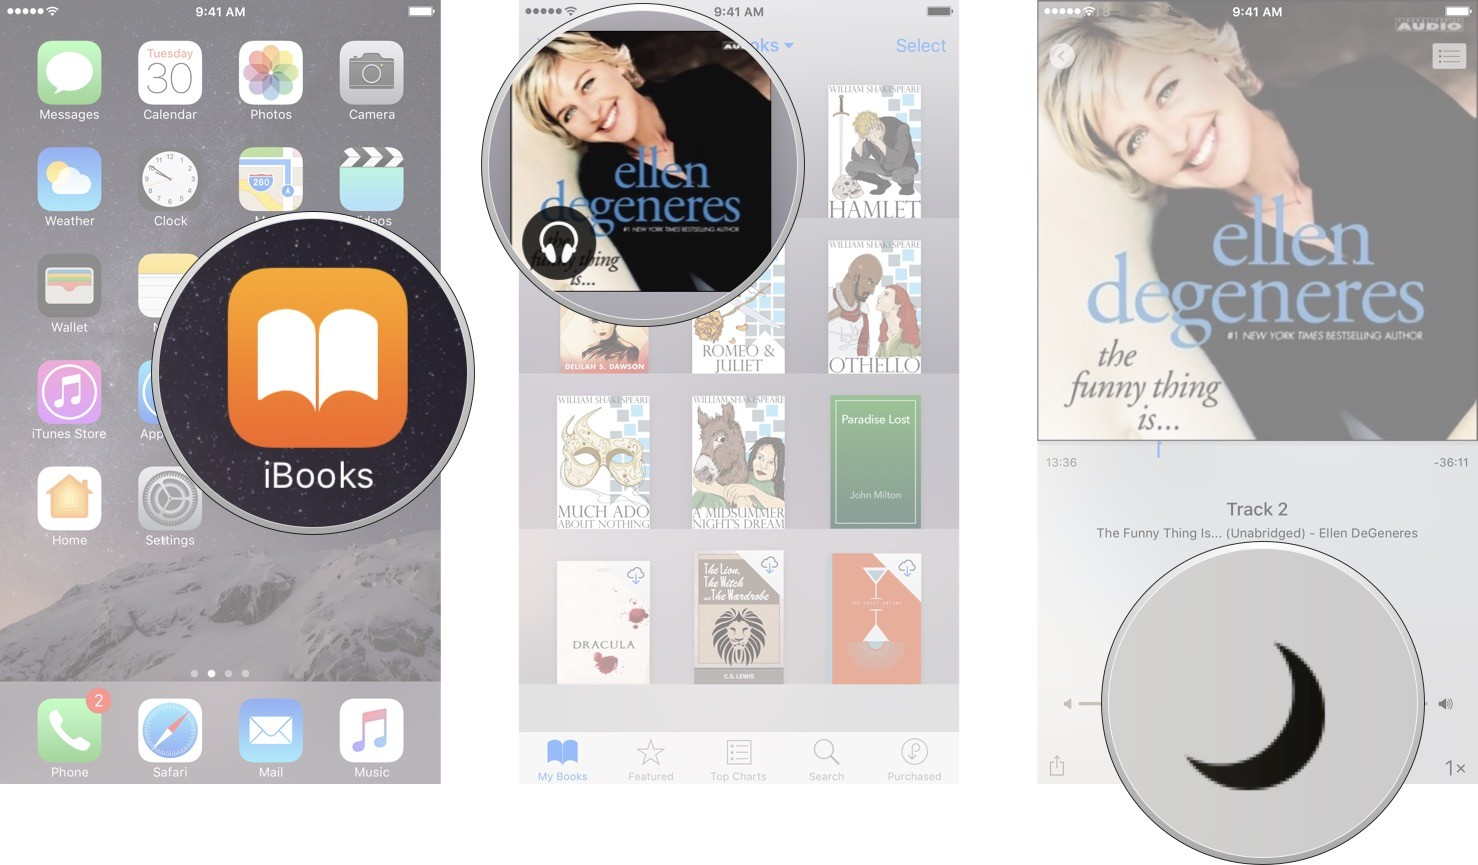 Launch iBooks, tap on the audio book you want to play, and then tap on the Sleep button.